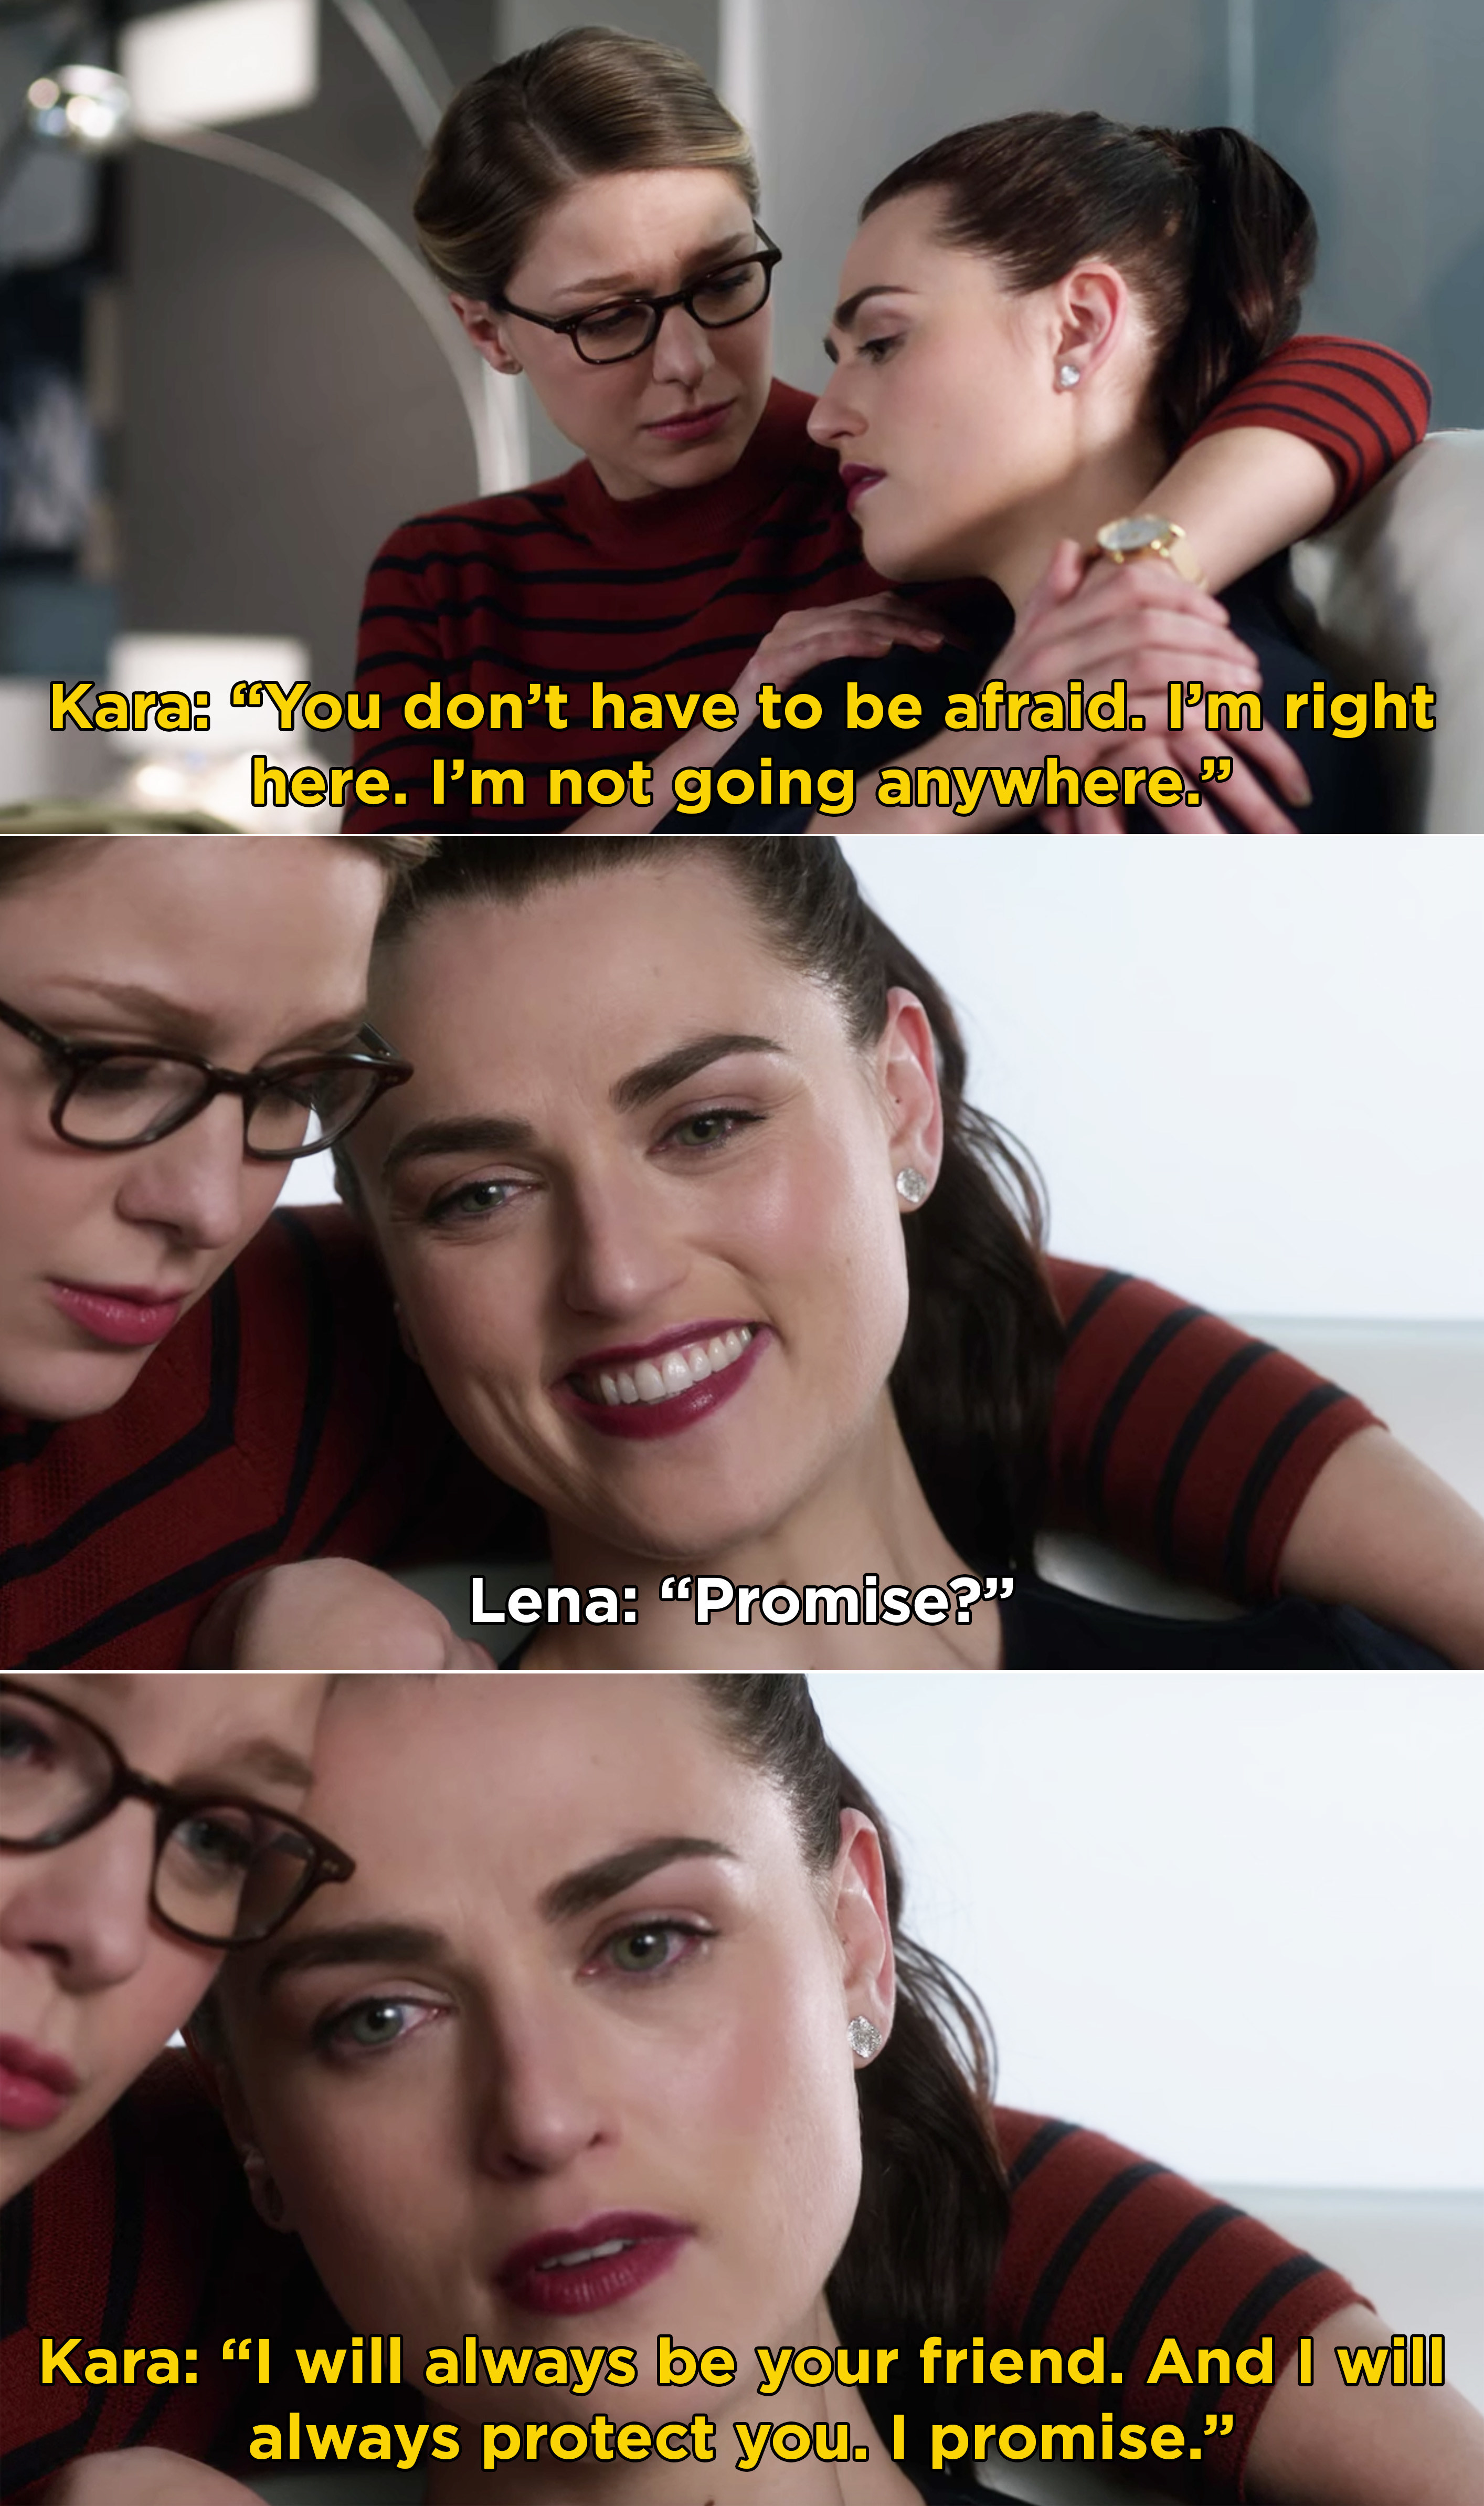 Kara promising Lena that they will always be friends and she will always protect her